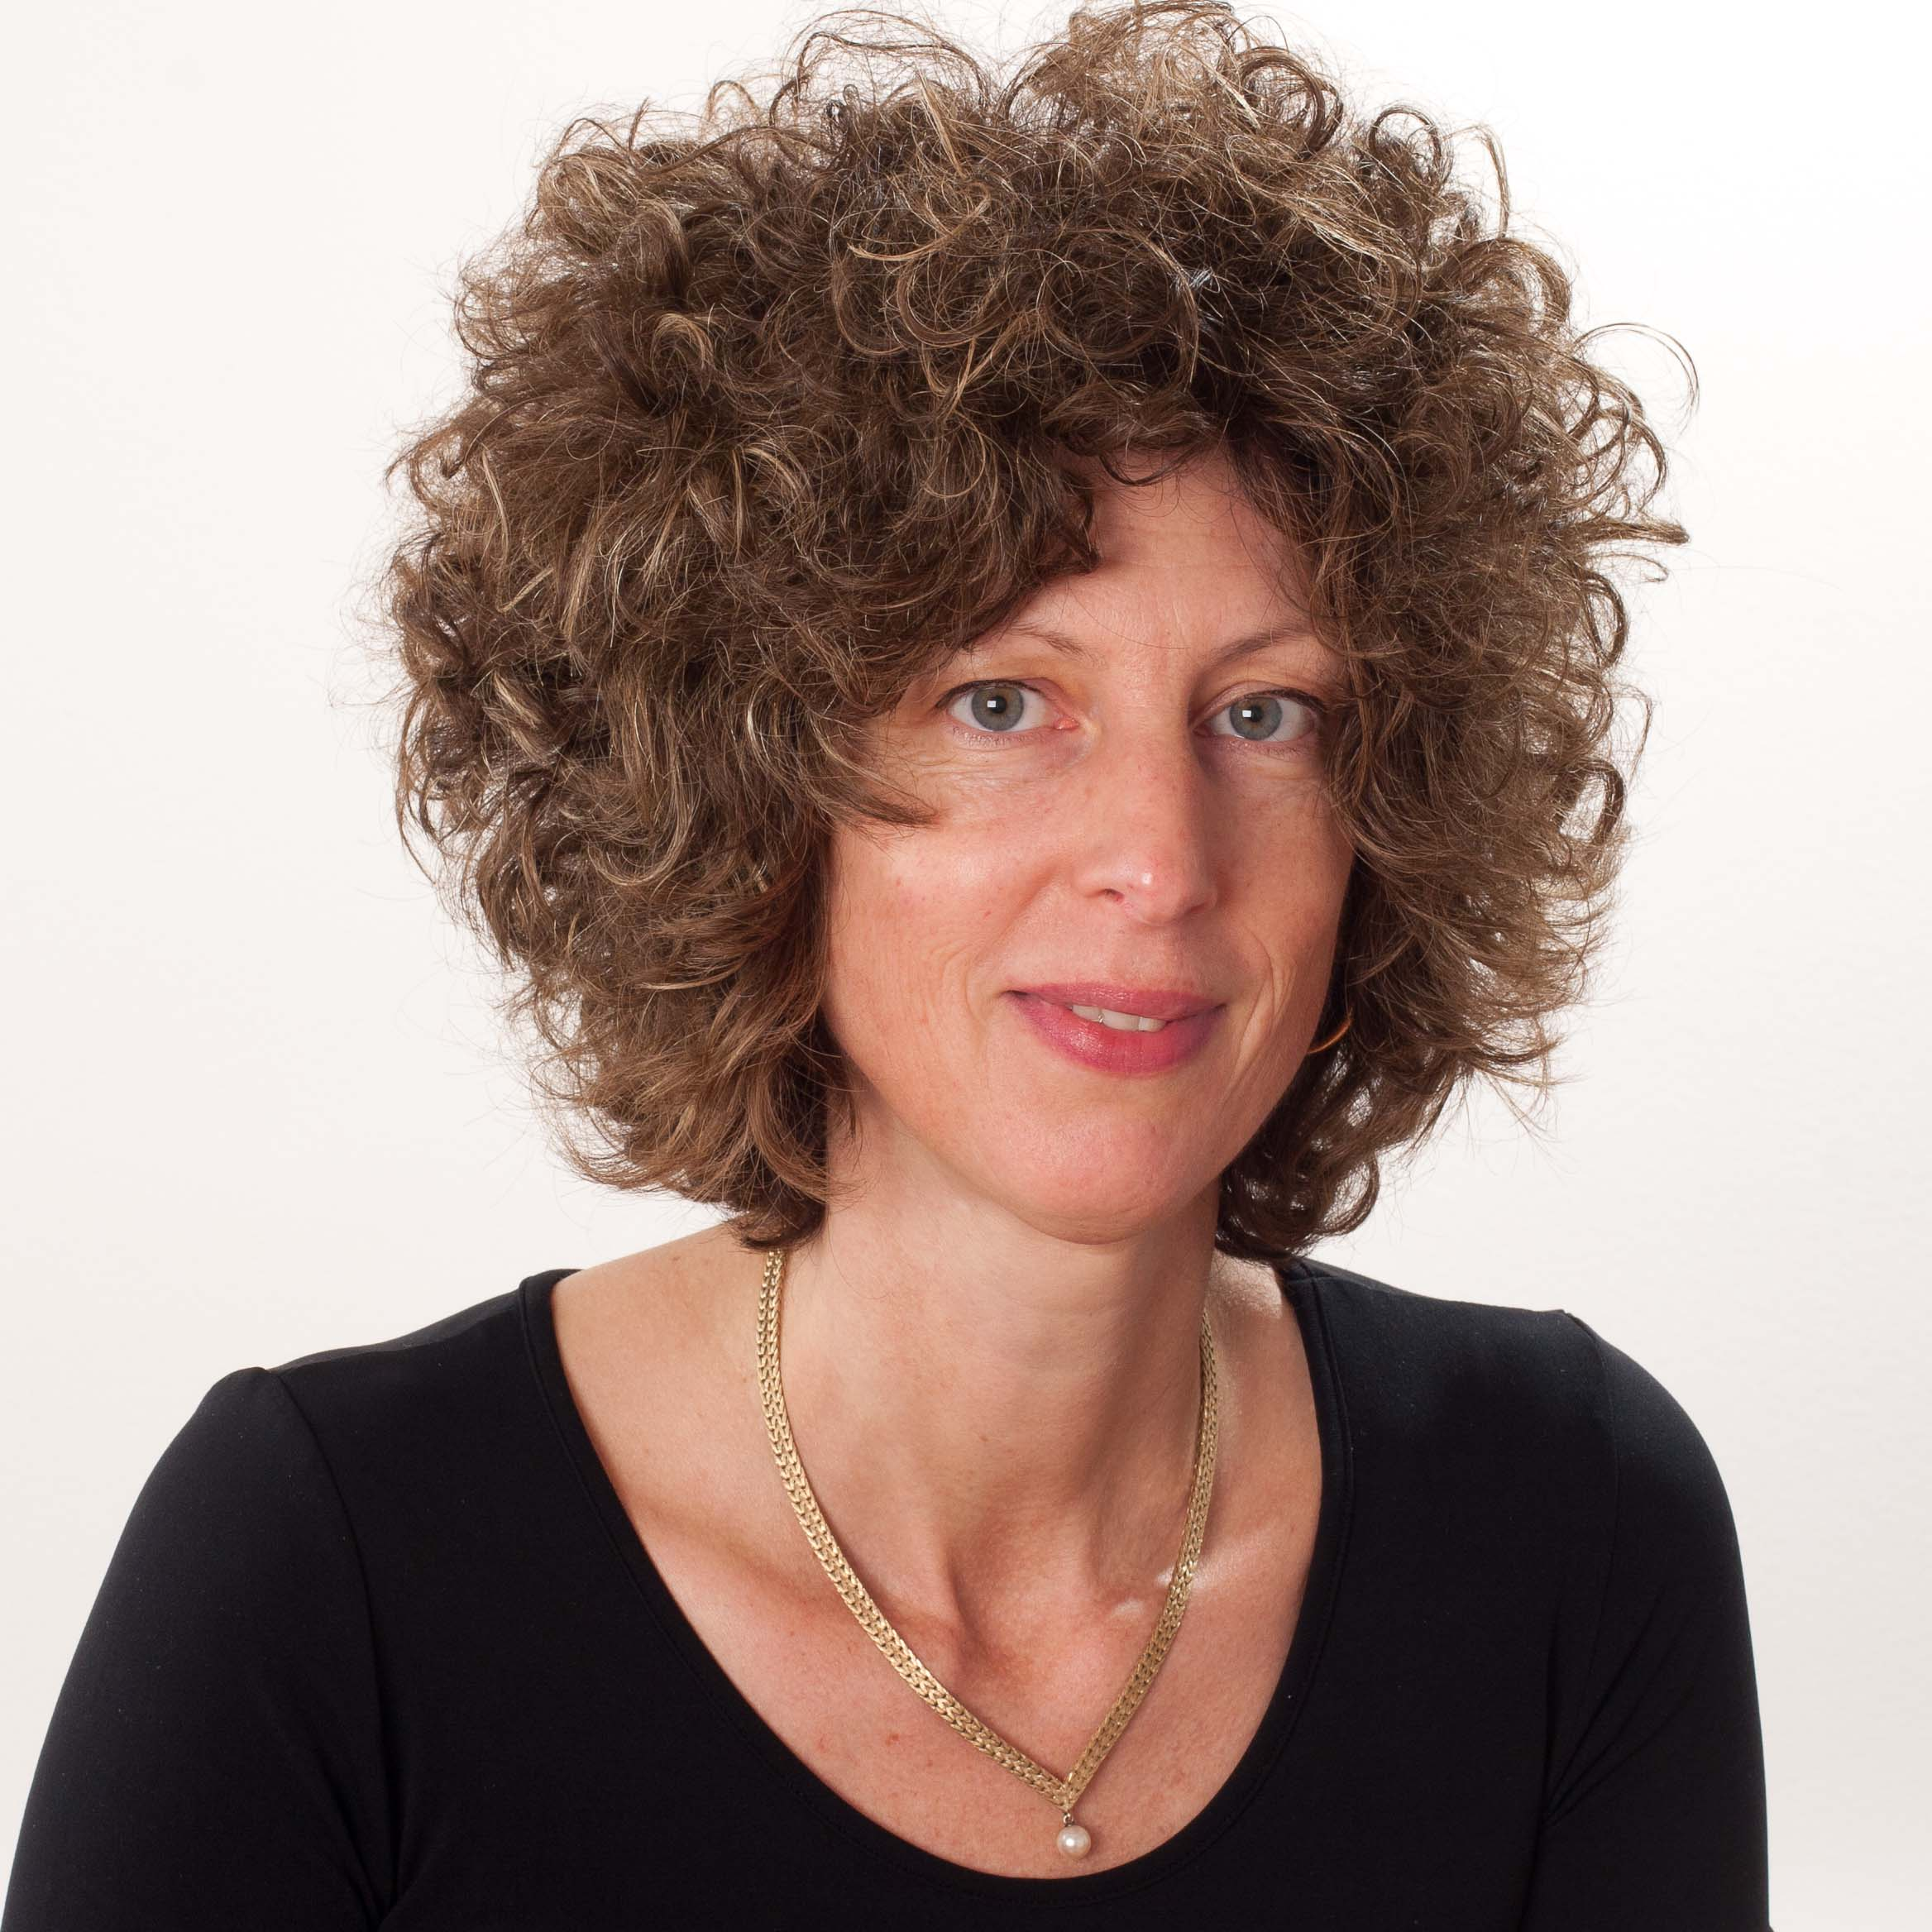 Mieke Donk : Associate professor at Experimental and Applied Psychology